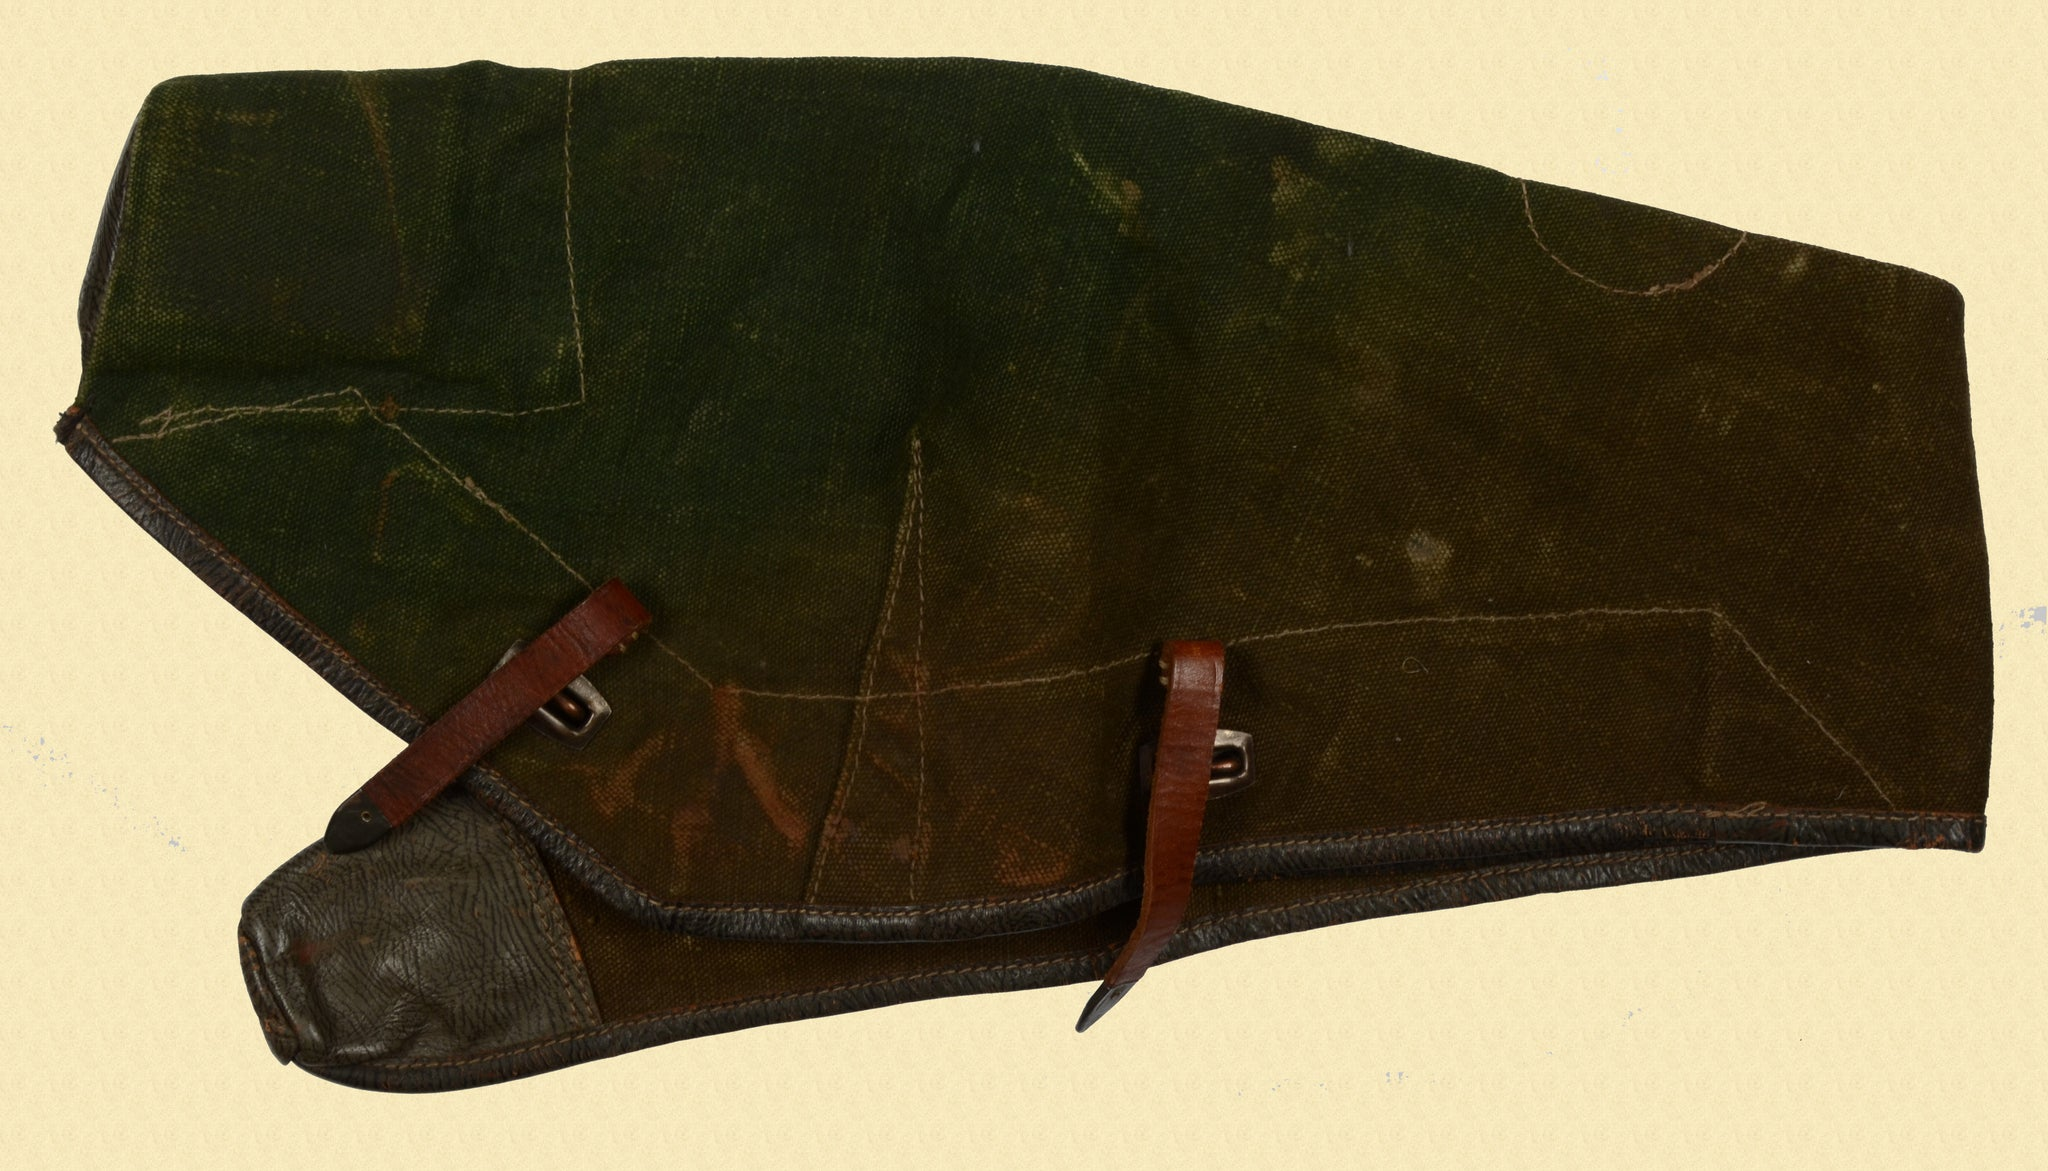 GERMAN K98k RIFLE COVER